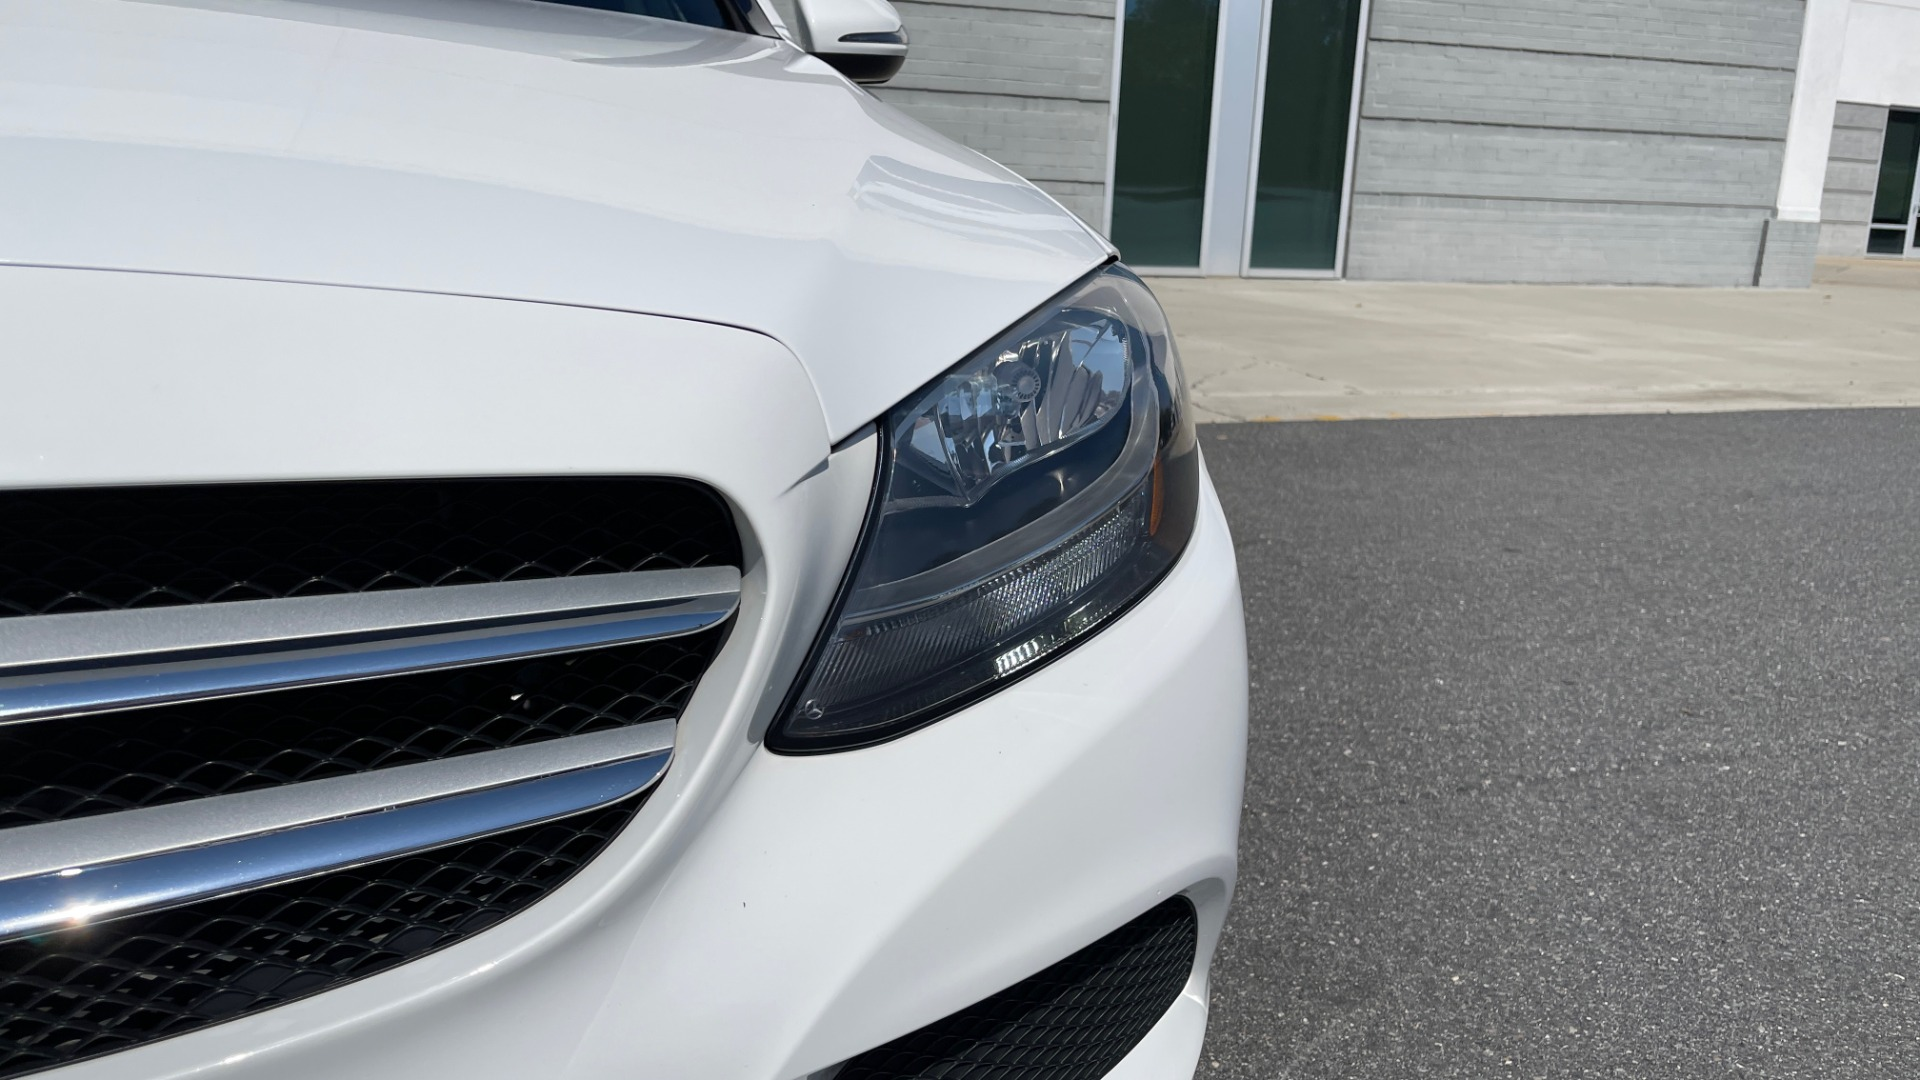 Used 2018 Mercedes-Benz C-CLASS C 300 PREMIUM / APPLE CARPLAY / KEYLESS-GO / SUNROOF / REARVIEW for sale $32,995 at Formula Imports in Charlotte NC 28227 11